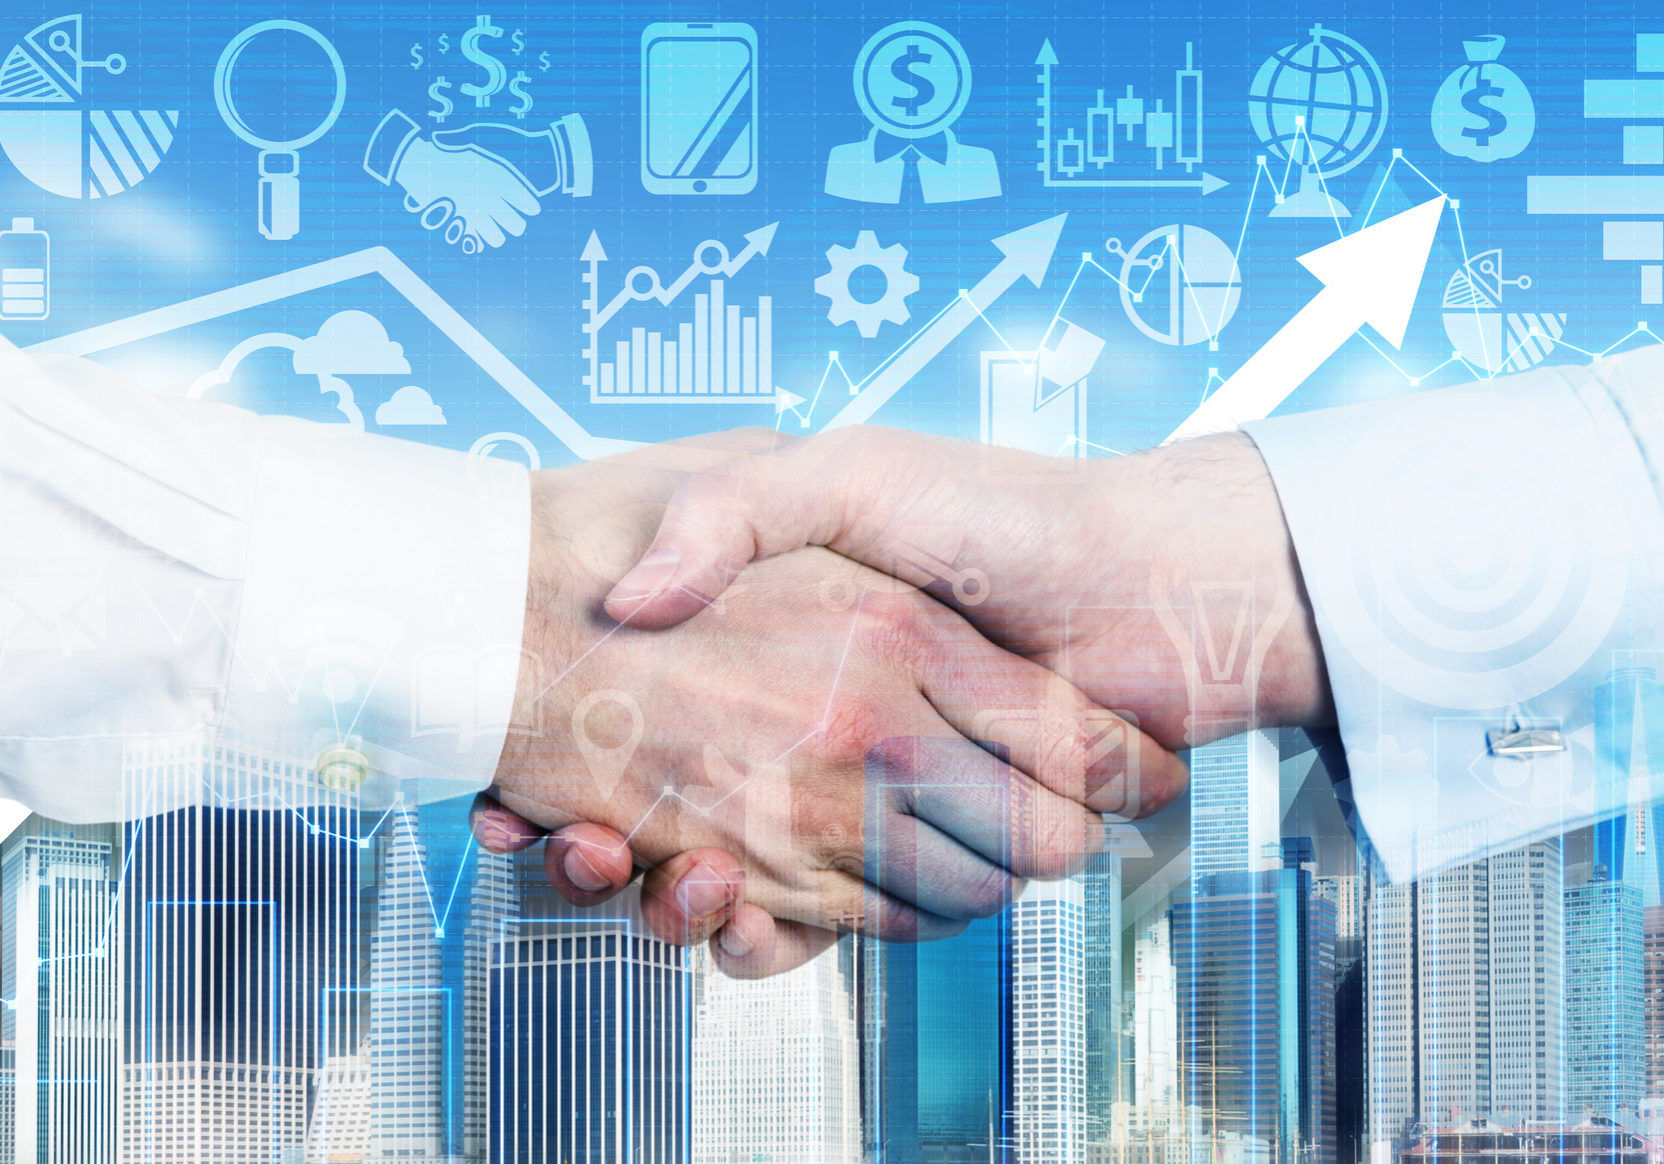 A handshake is over the growing arrow and business icons in blur on the background.